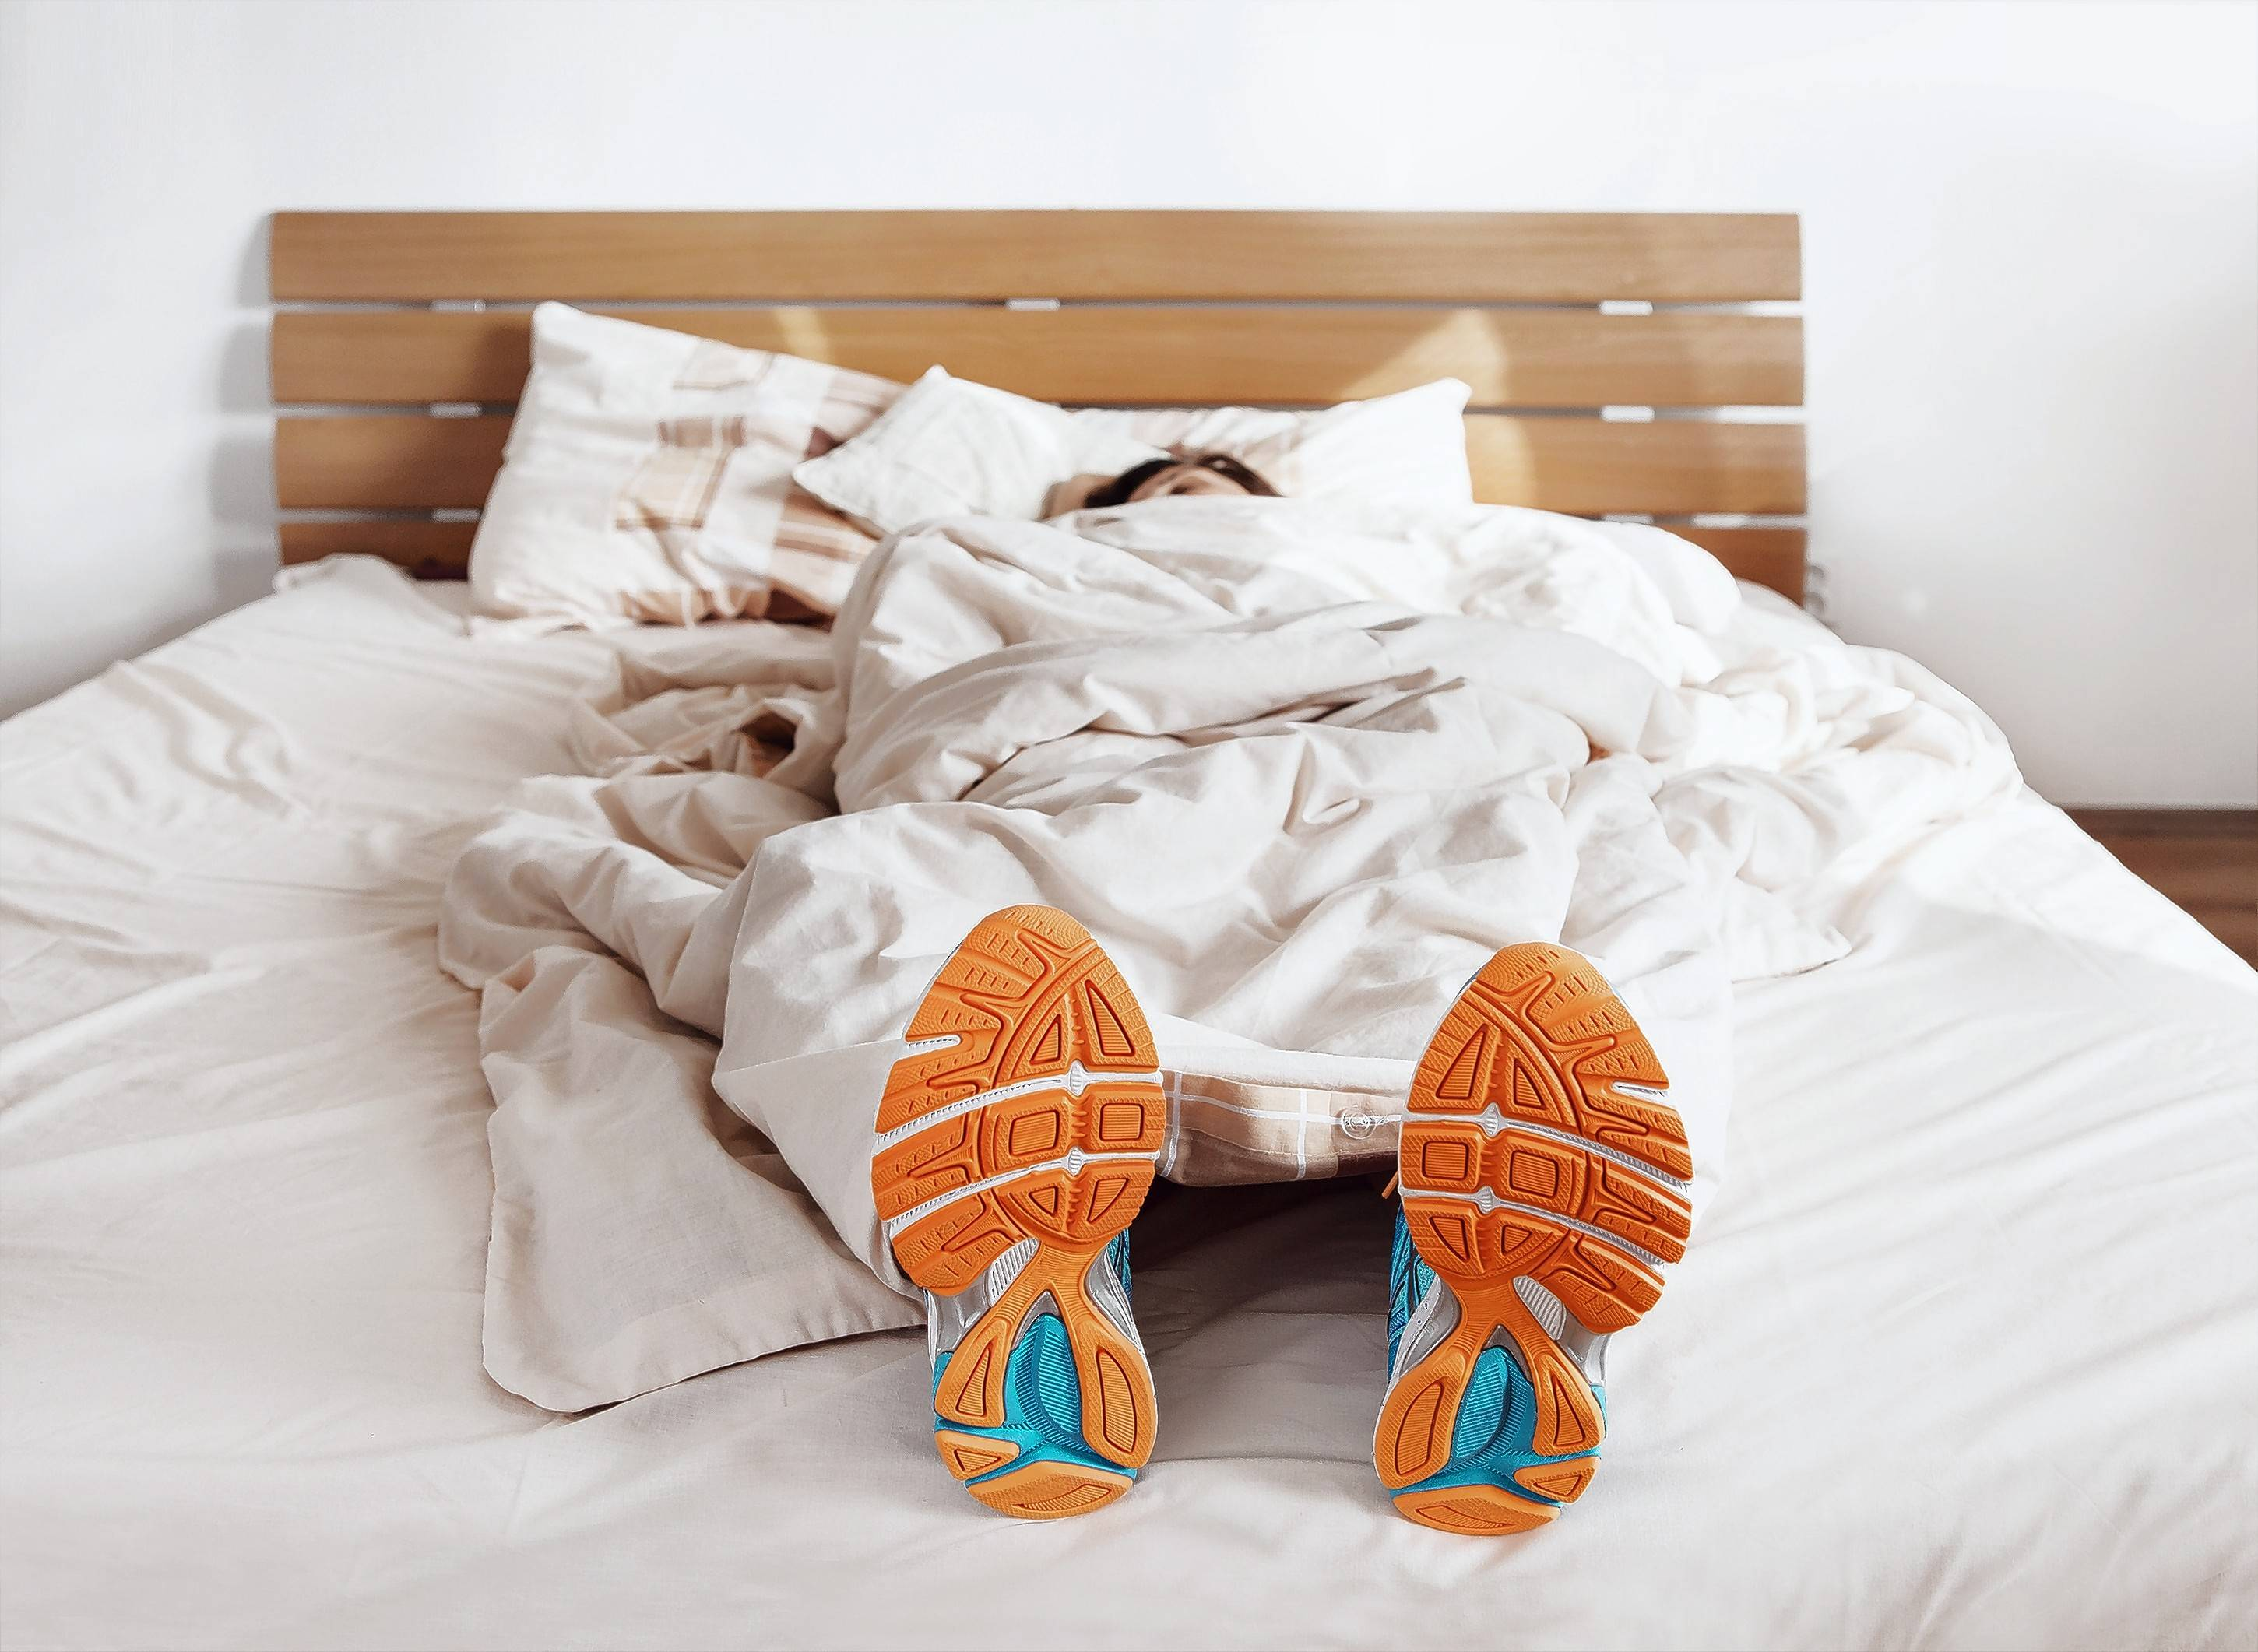 Sleeping with your running shoes on isn't necessary to be ready for early morning exercise, but there are some tips that can help you add morning workouts to your day.